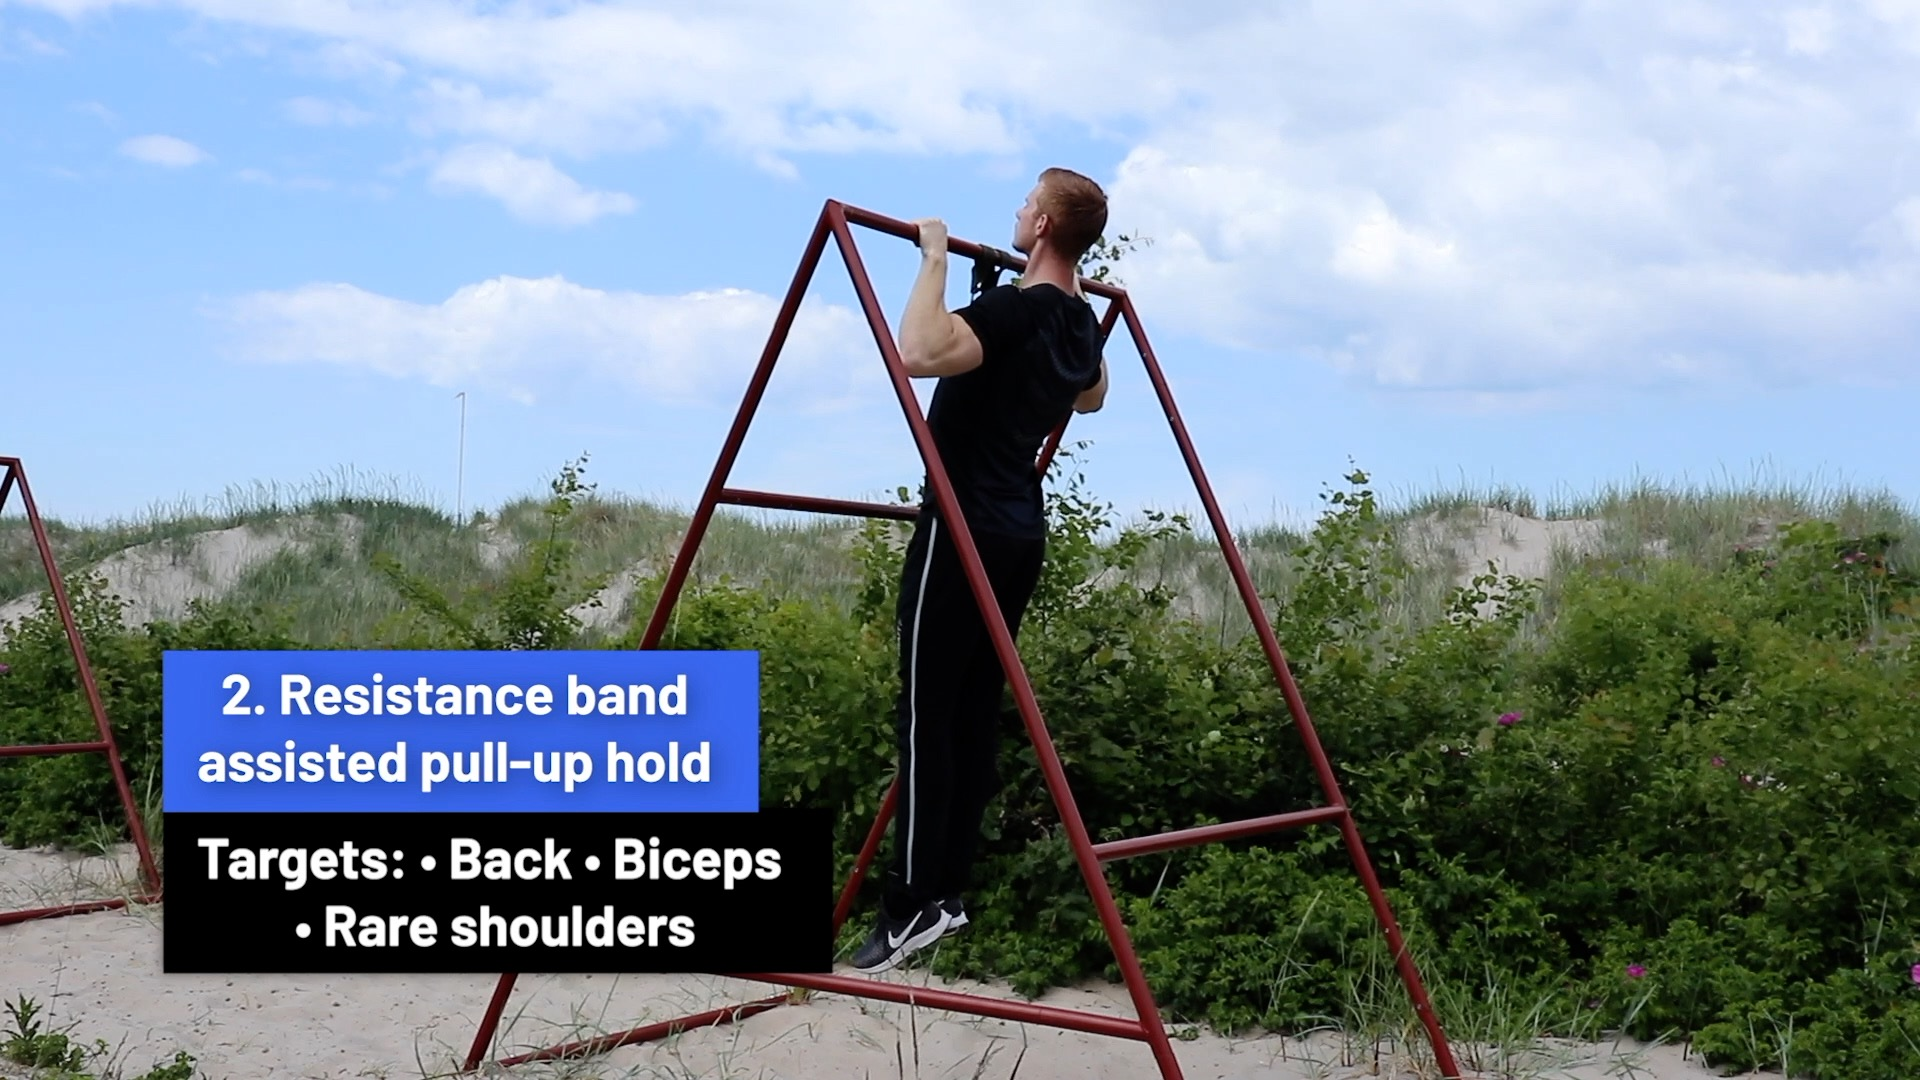 Resistance band assisted pull-up hold